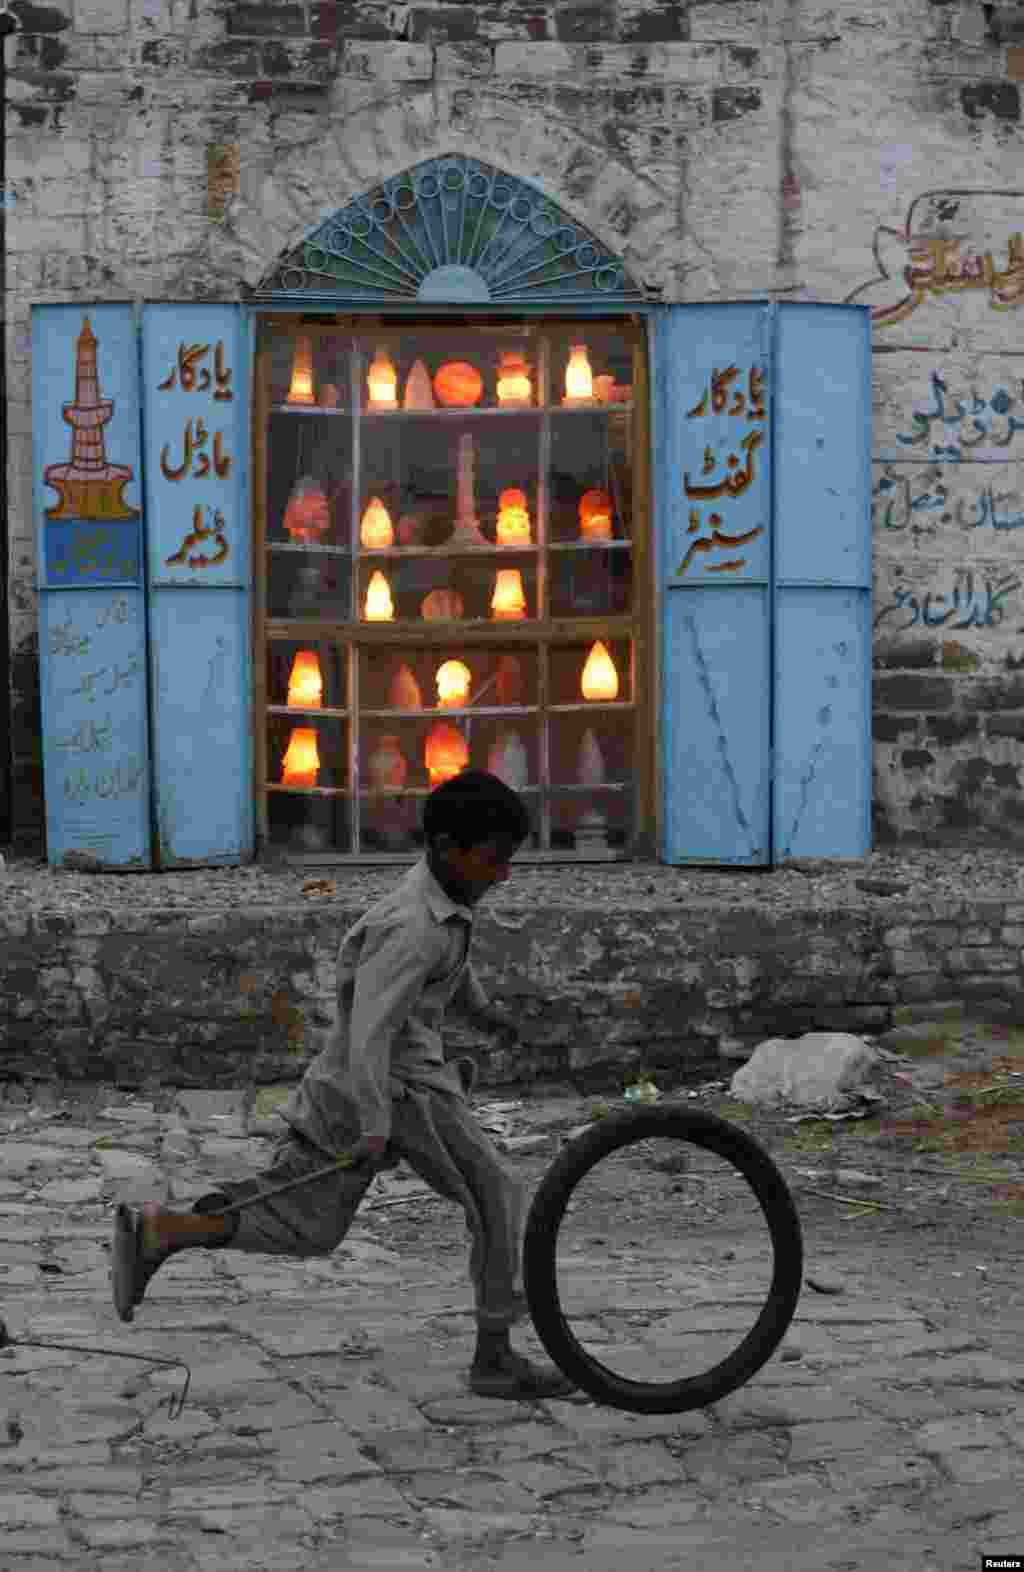 A Pakistani boy runs past a shop selling lamps and decoration pieces.